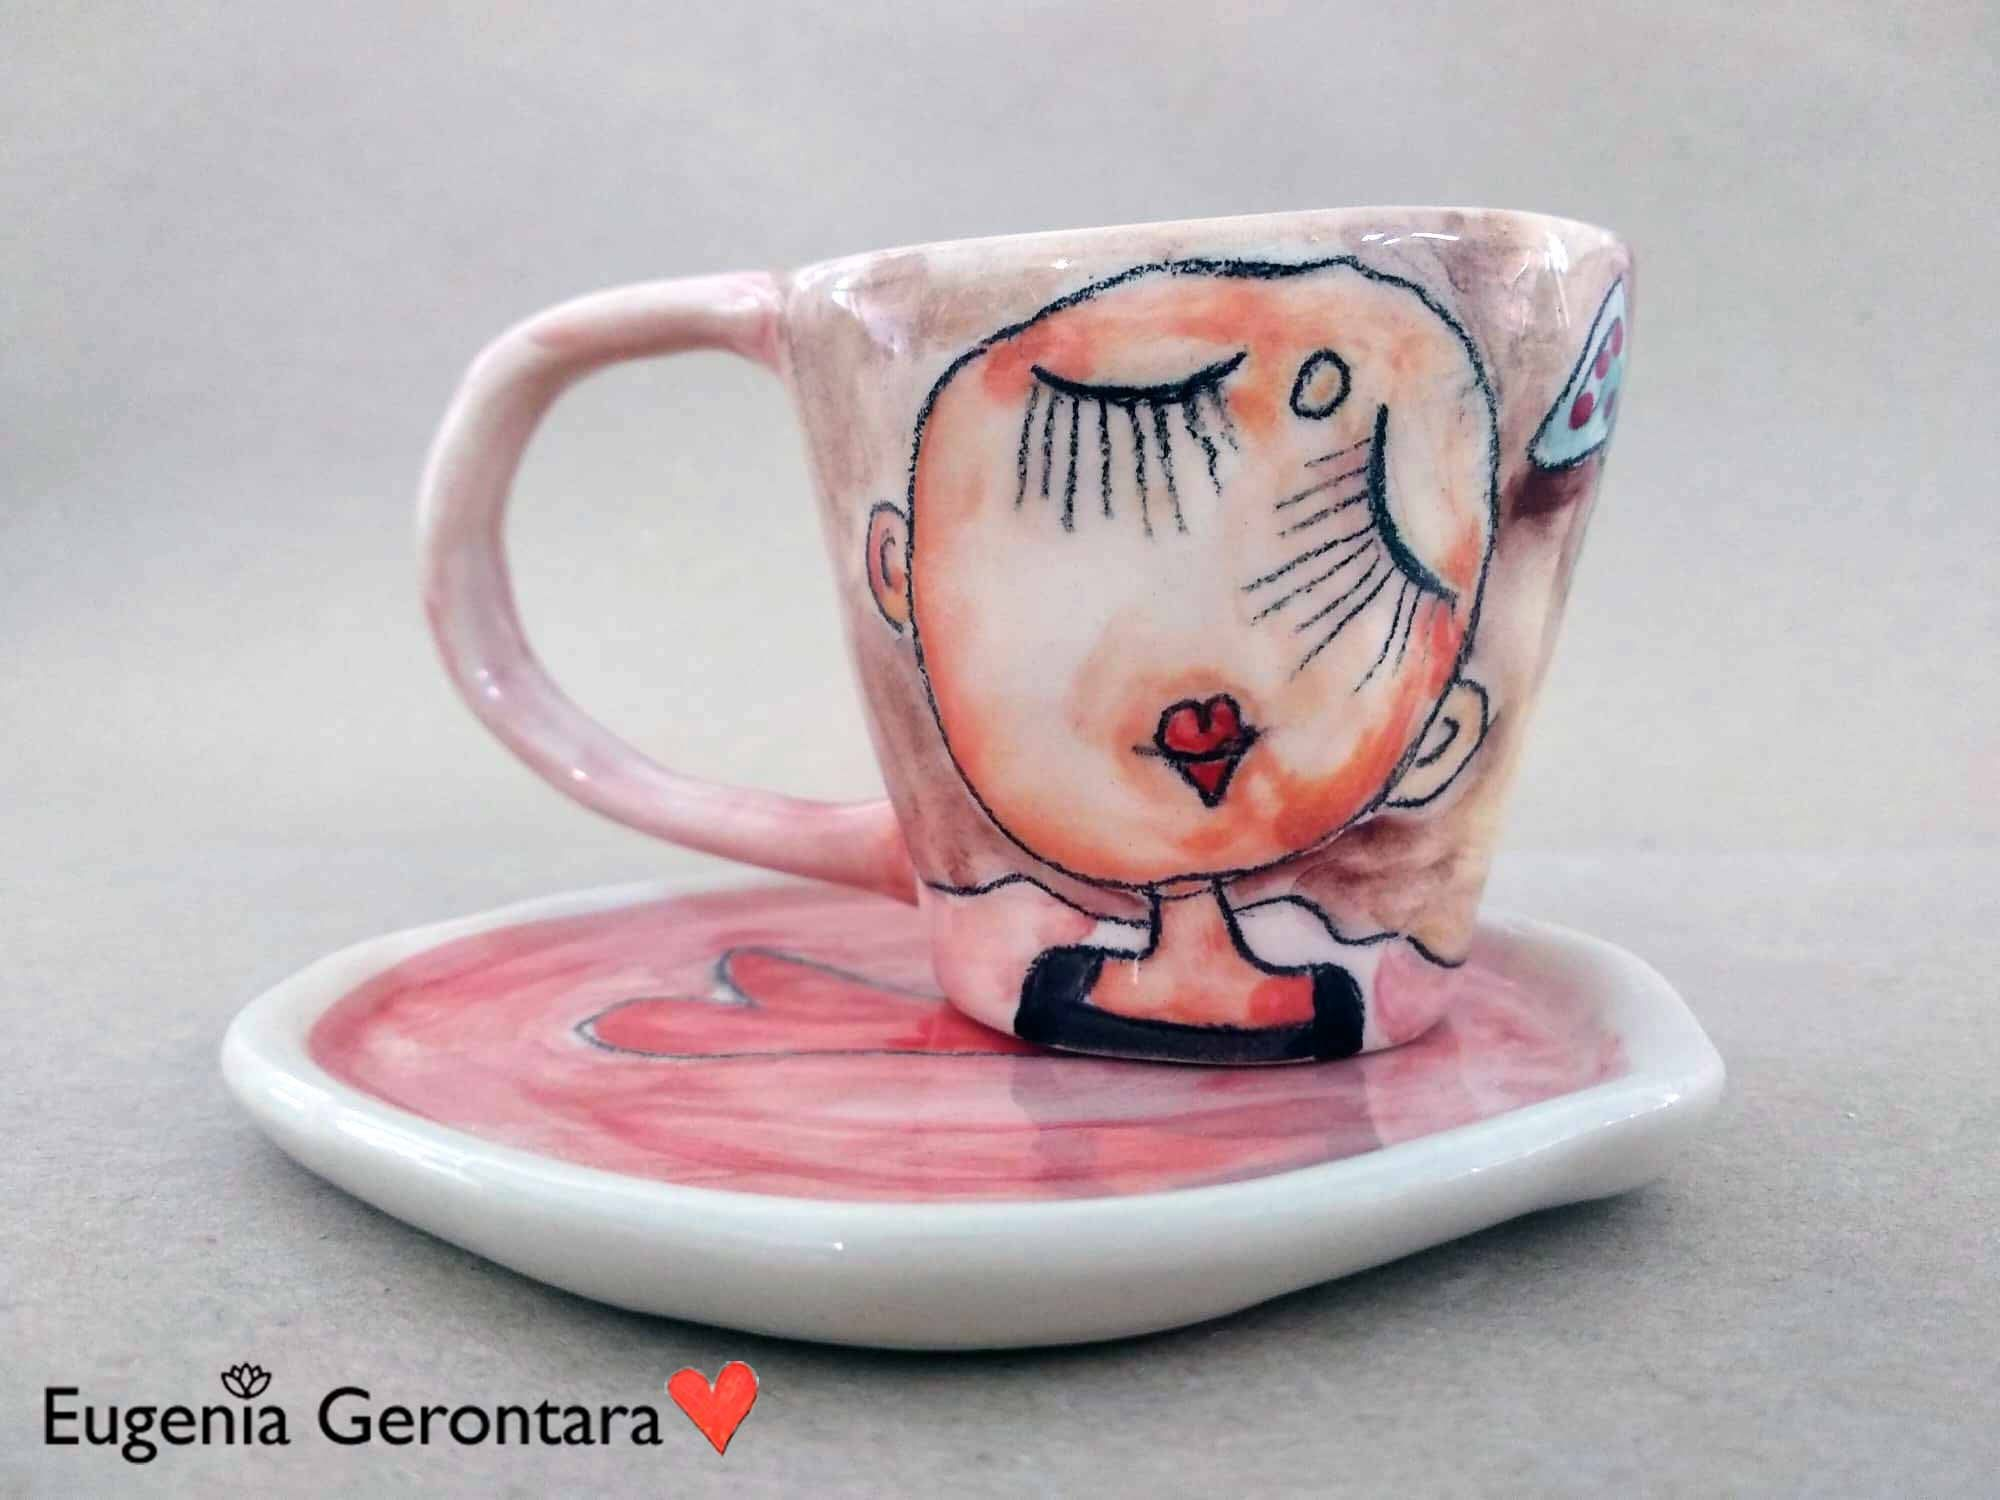 Girly Cute Espresso Cup With Saucer 100 Hand Made And Durable Coffee Cups Ideal Gift For Blondies Unique Coffee Cup Unique Coffee Unique Ceramics Ceramics Pottery Art